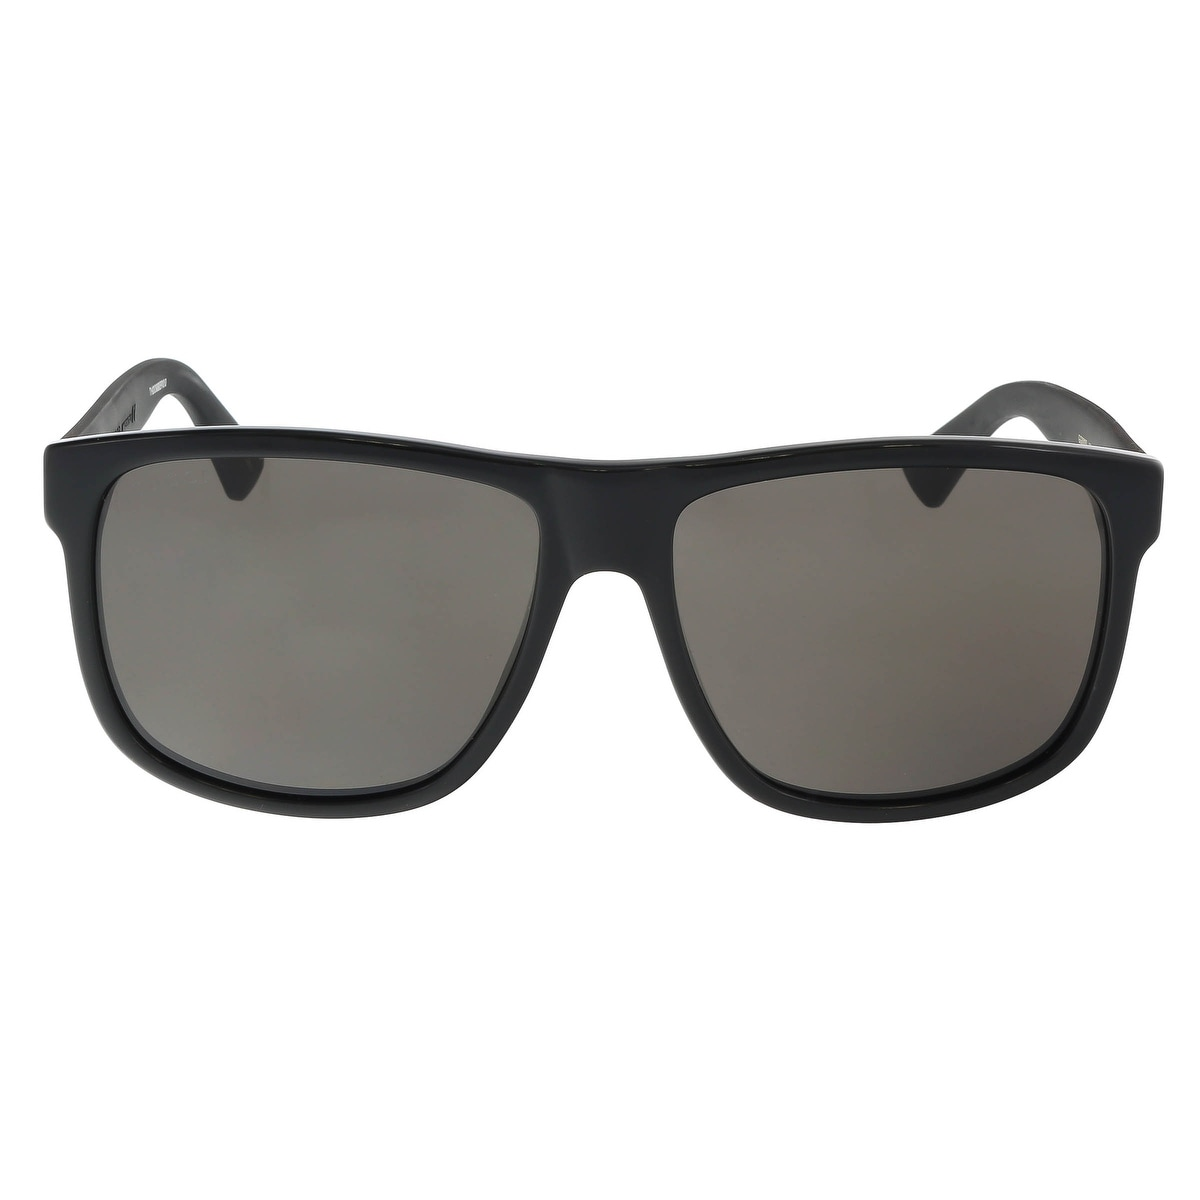 e379d9d5c Shop Gucci GG0010S 001 Black Square Sunglasses - 58-16-145 - Free Shipping  Today - Overstock - 18235788